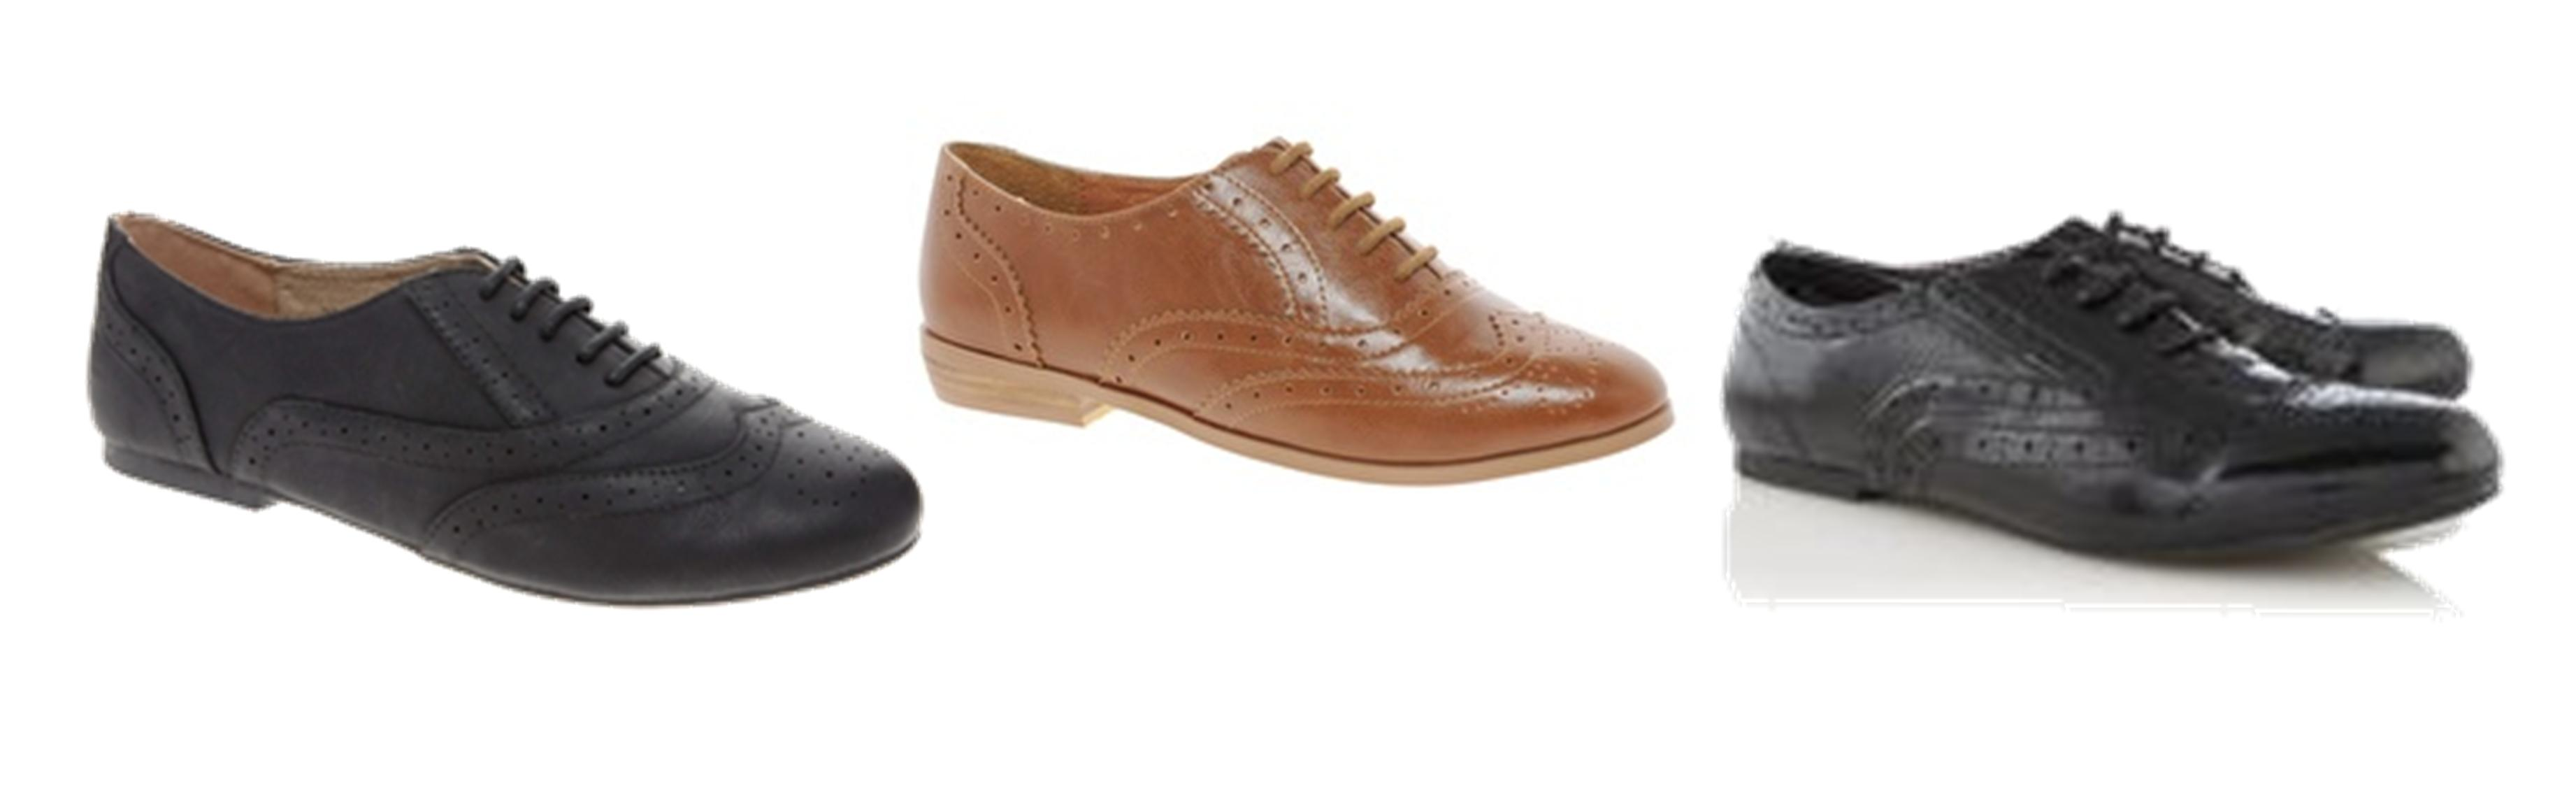 tuesday shoesday mens brogues